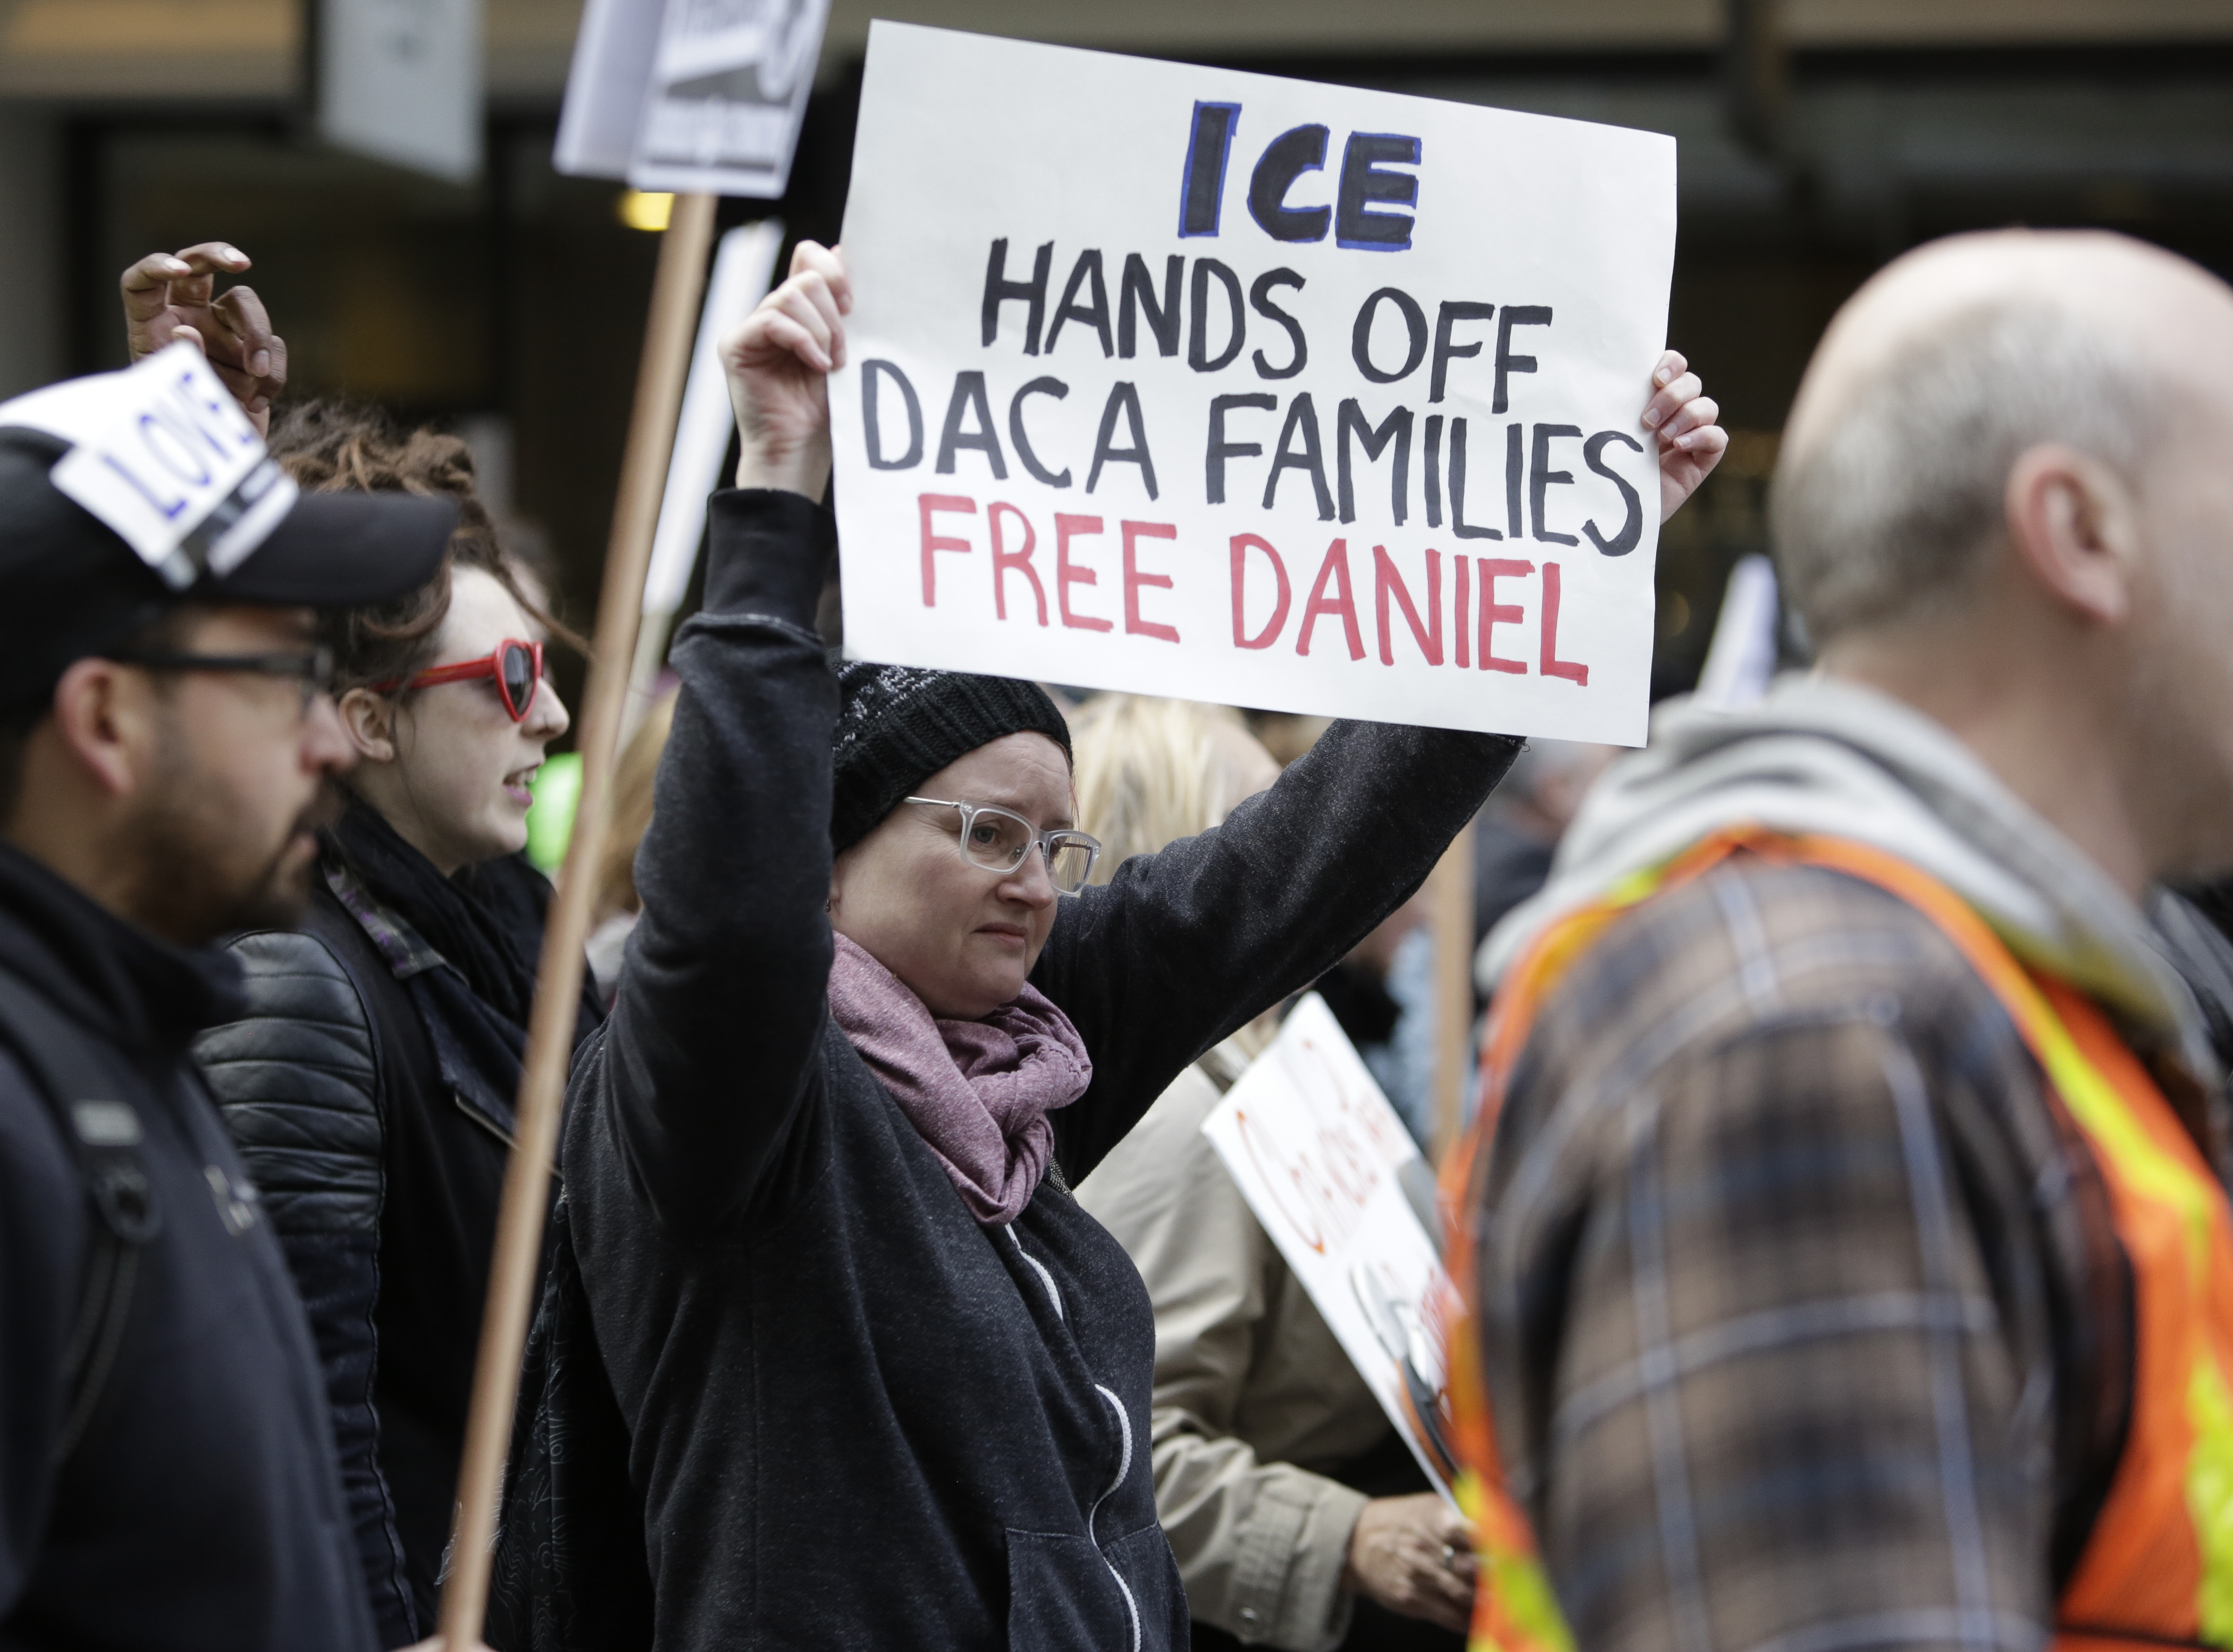 People march to protest the detention of Daniel Ramirez Medina, a Deferred Action for Childhood Arrivals (DACA) recipient, by US Immigration and Customs Enforcement (ICE) in Seattle, Washington on February 17, 2017.